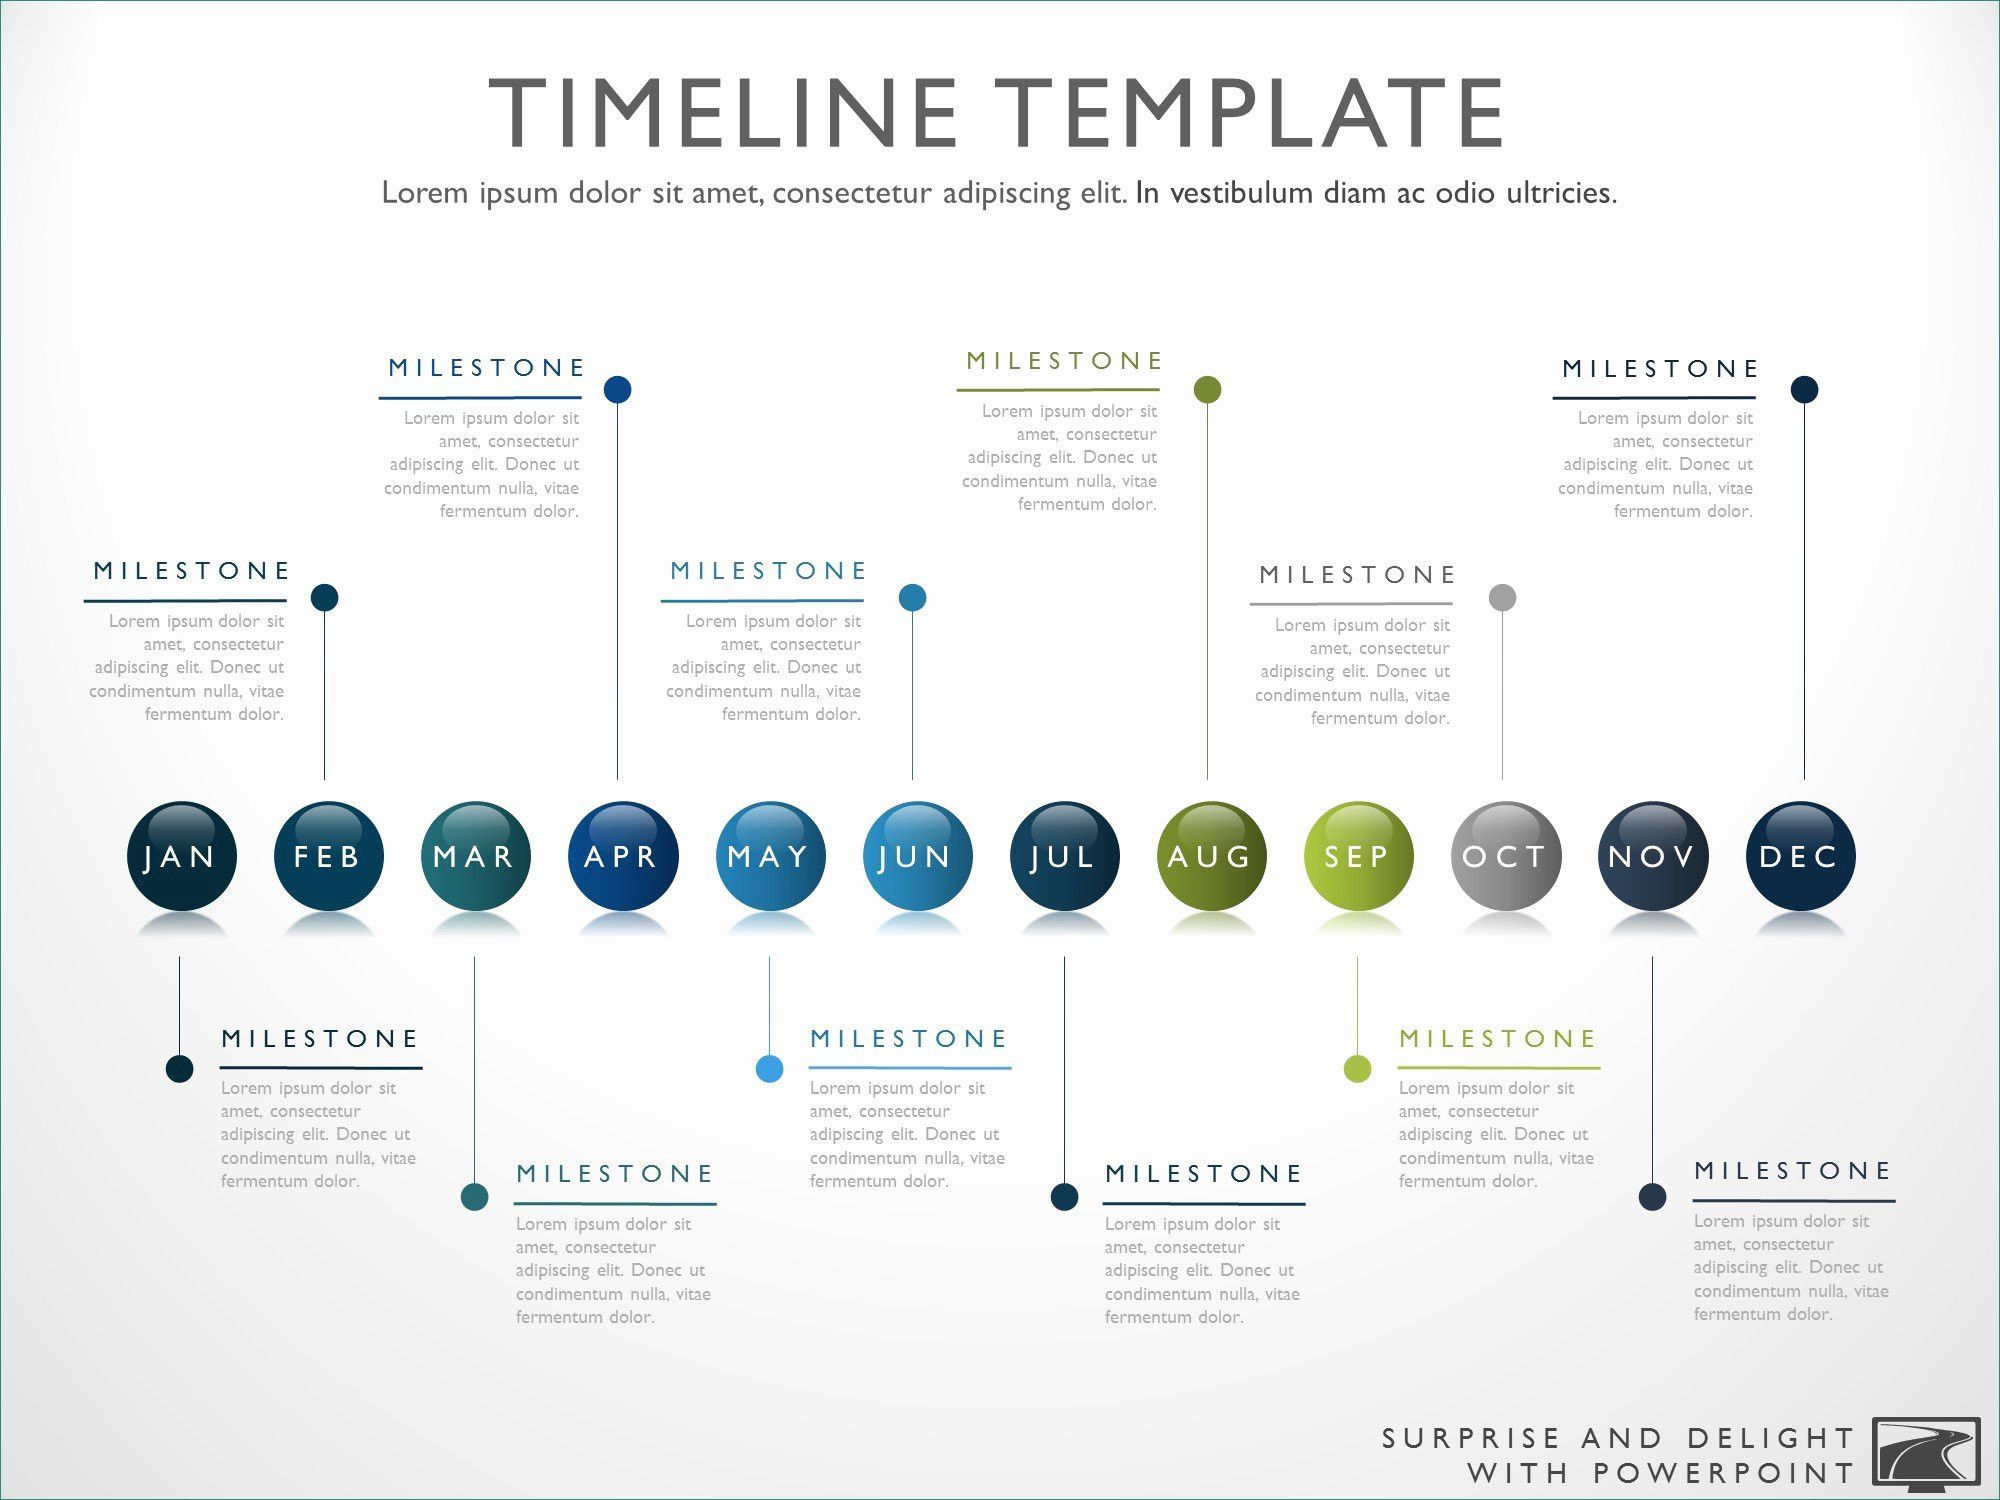 Powerpoint Timeline Template Free Cool Timeline Template Powerpoint Free Microsoft Powerpoint Timeline Template Free Timeline Design Project Timeline Template